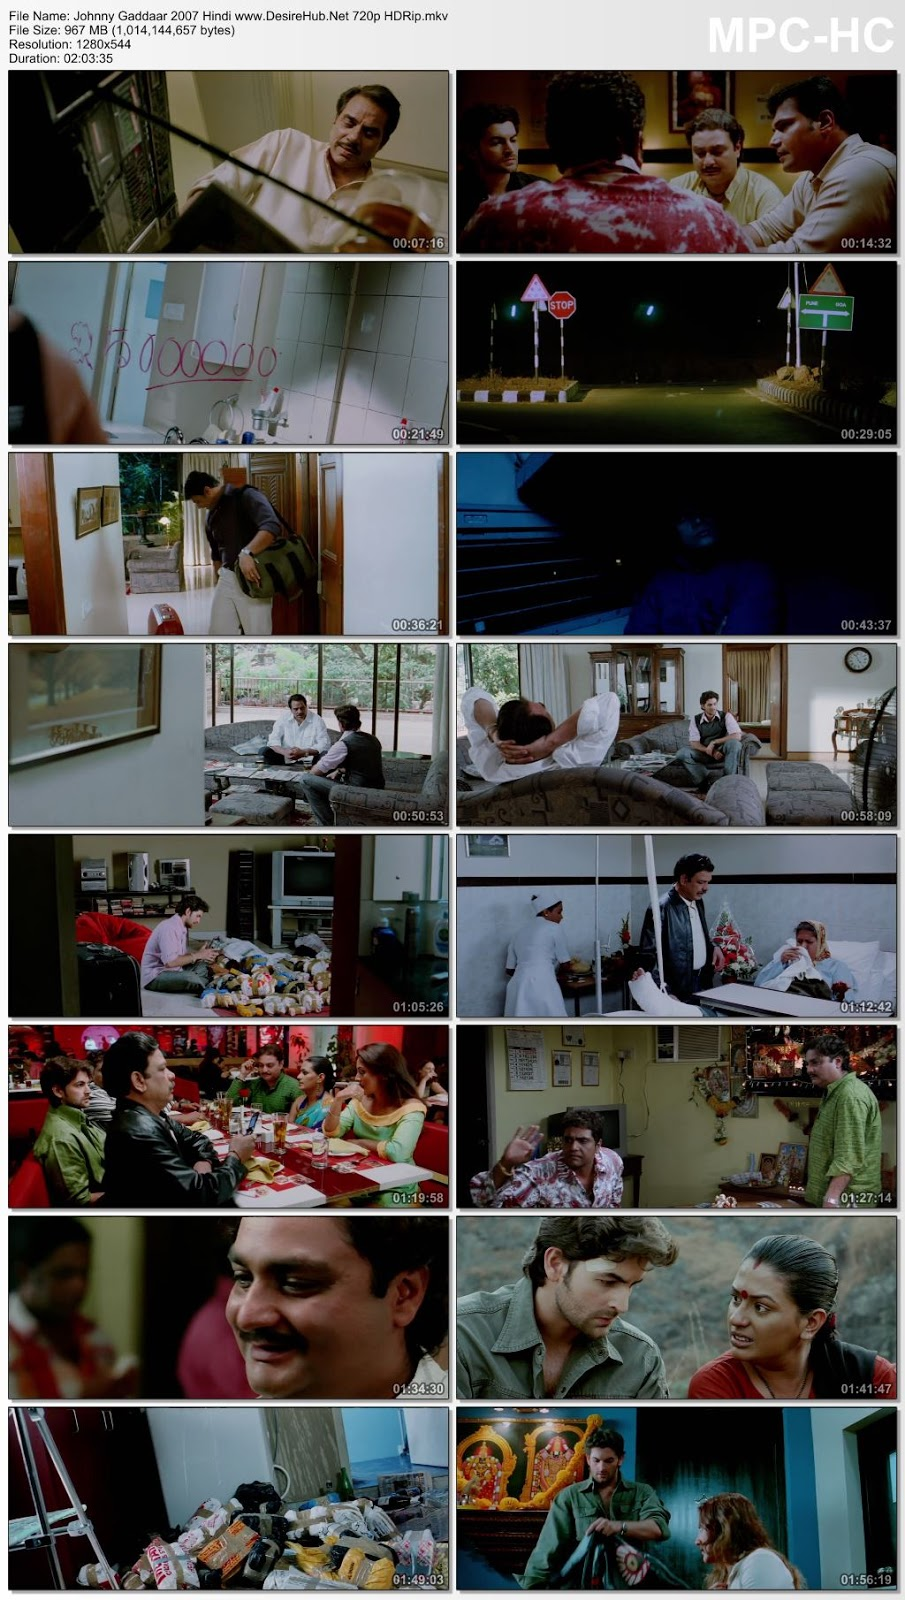 Johnny Gaddaar 2007 Hindi 480p HDRip 350MB Desirehub